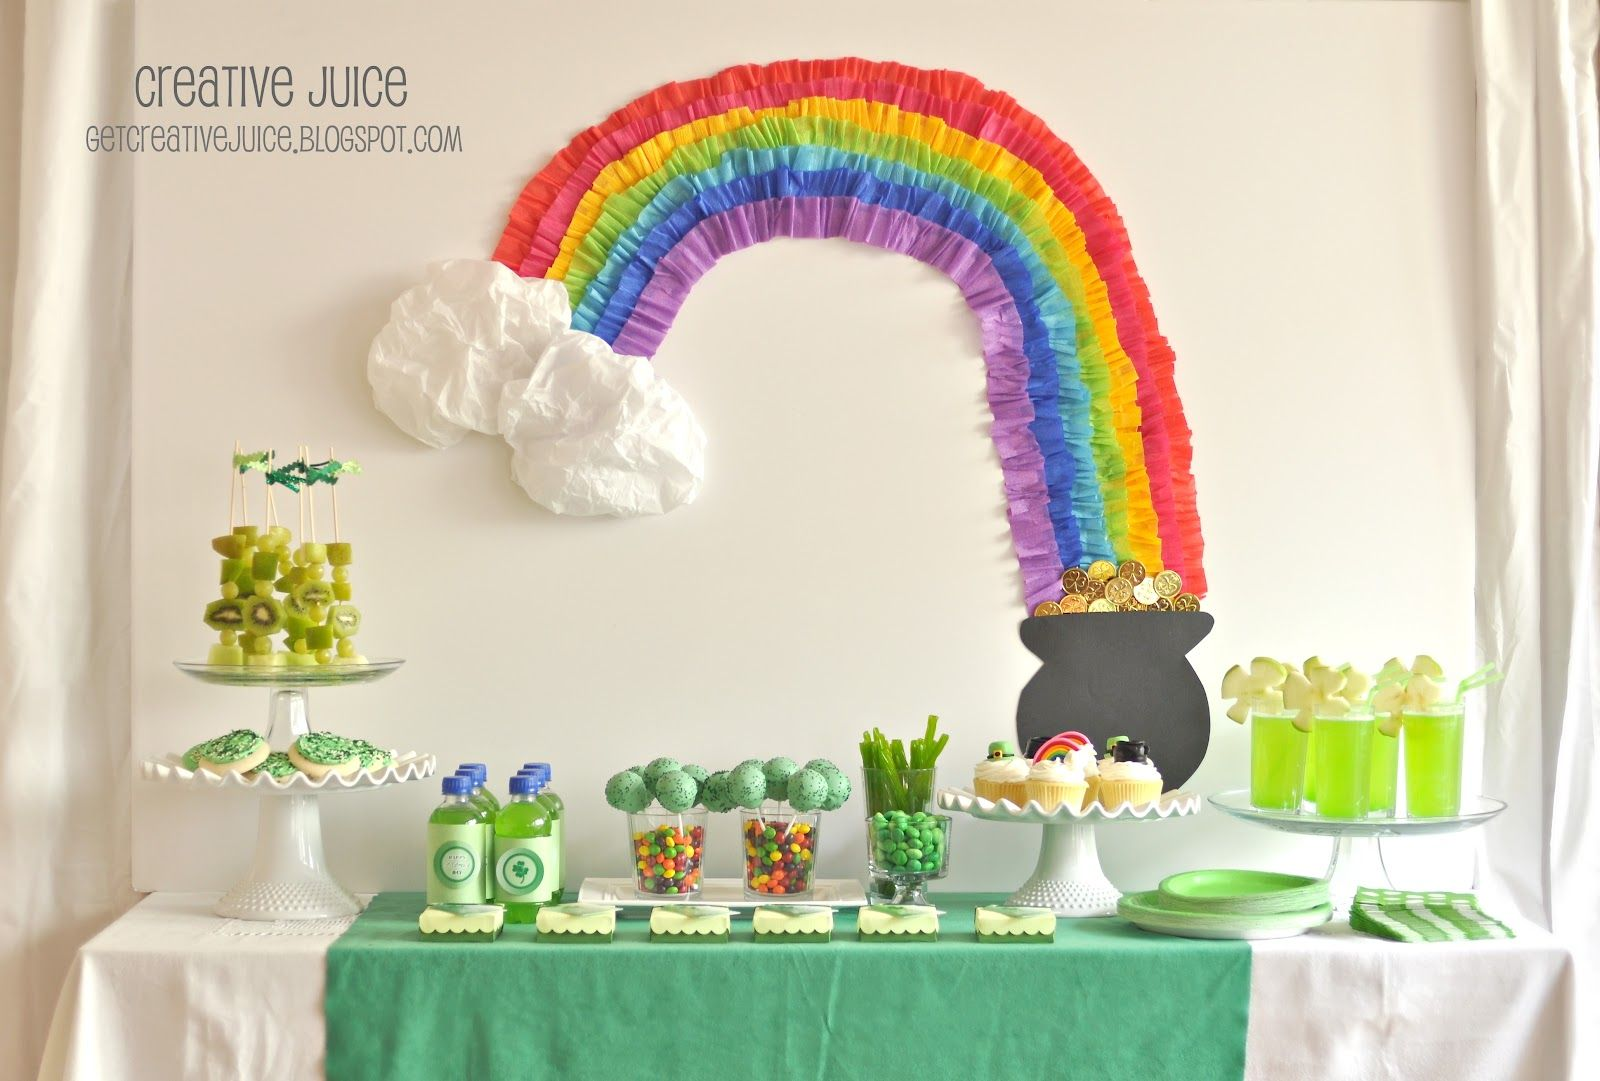 St. Patrick's Day party ideas and recipes. LOVE THE CREPE PAPER RAINBOW!